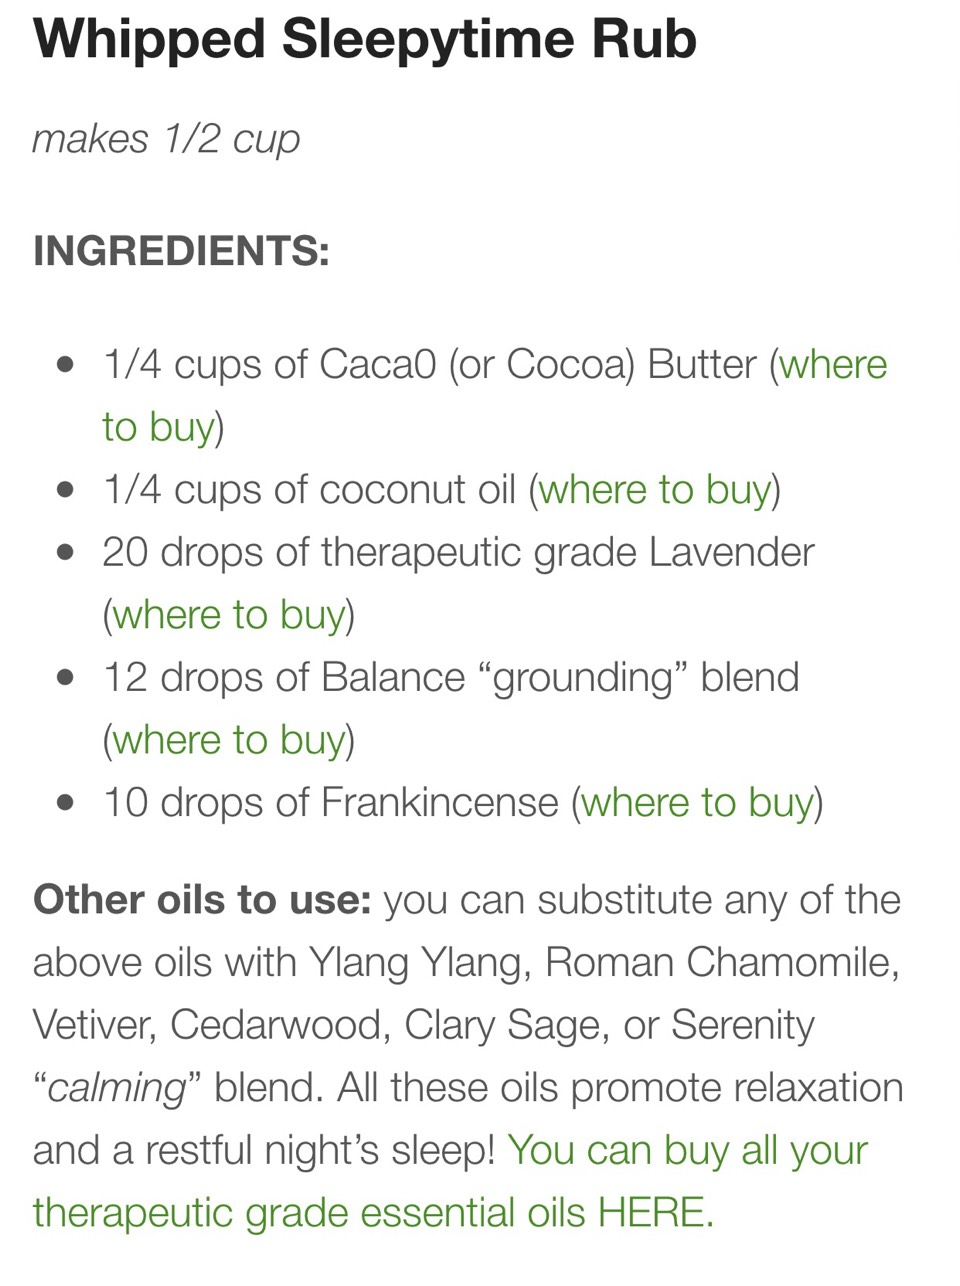 Link to purchase oils: ✨http://thepaleomama.com/essential-oils/✨